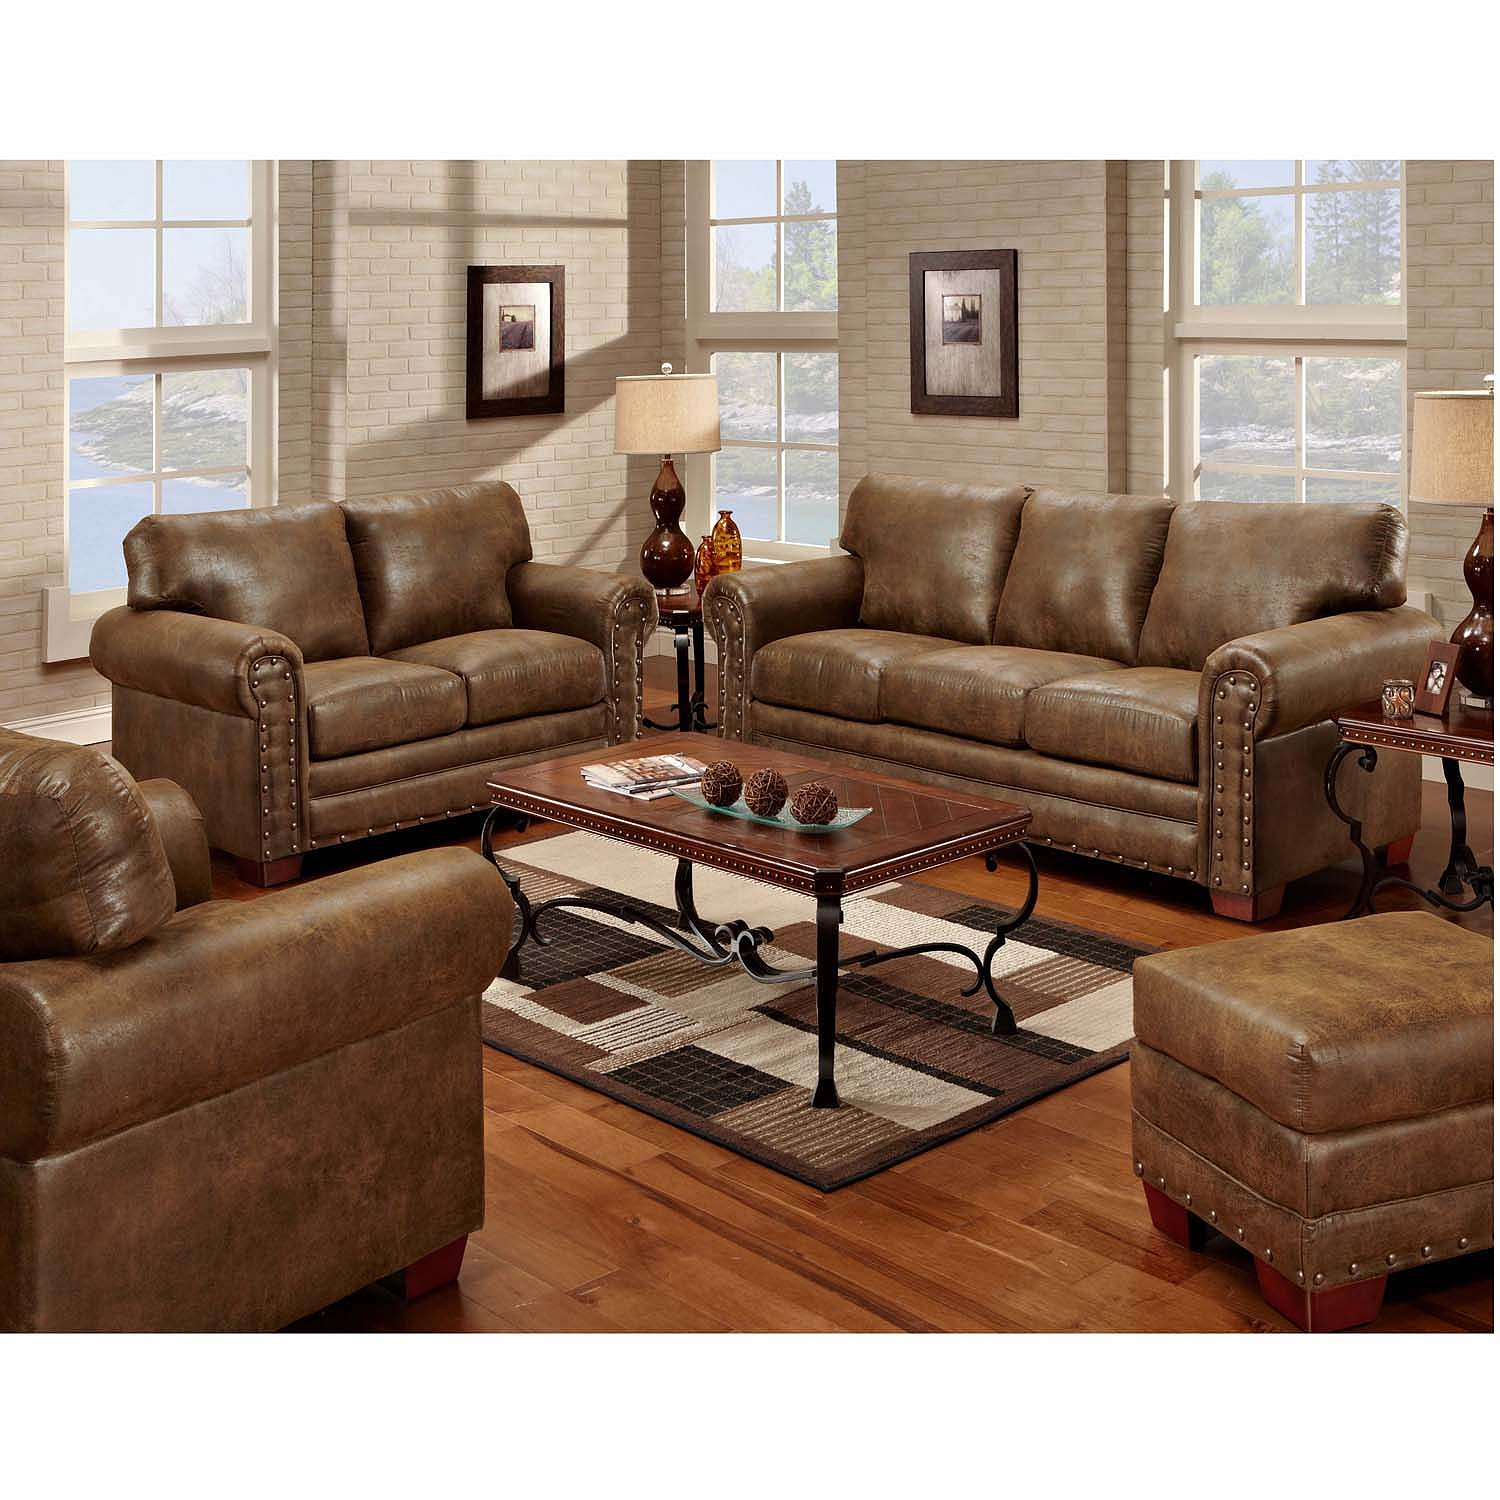 Details about Rustic Western Buckskin Nailhead Living Room Sofa Loveseat  4-Pc Set Faux Leather